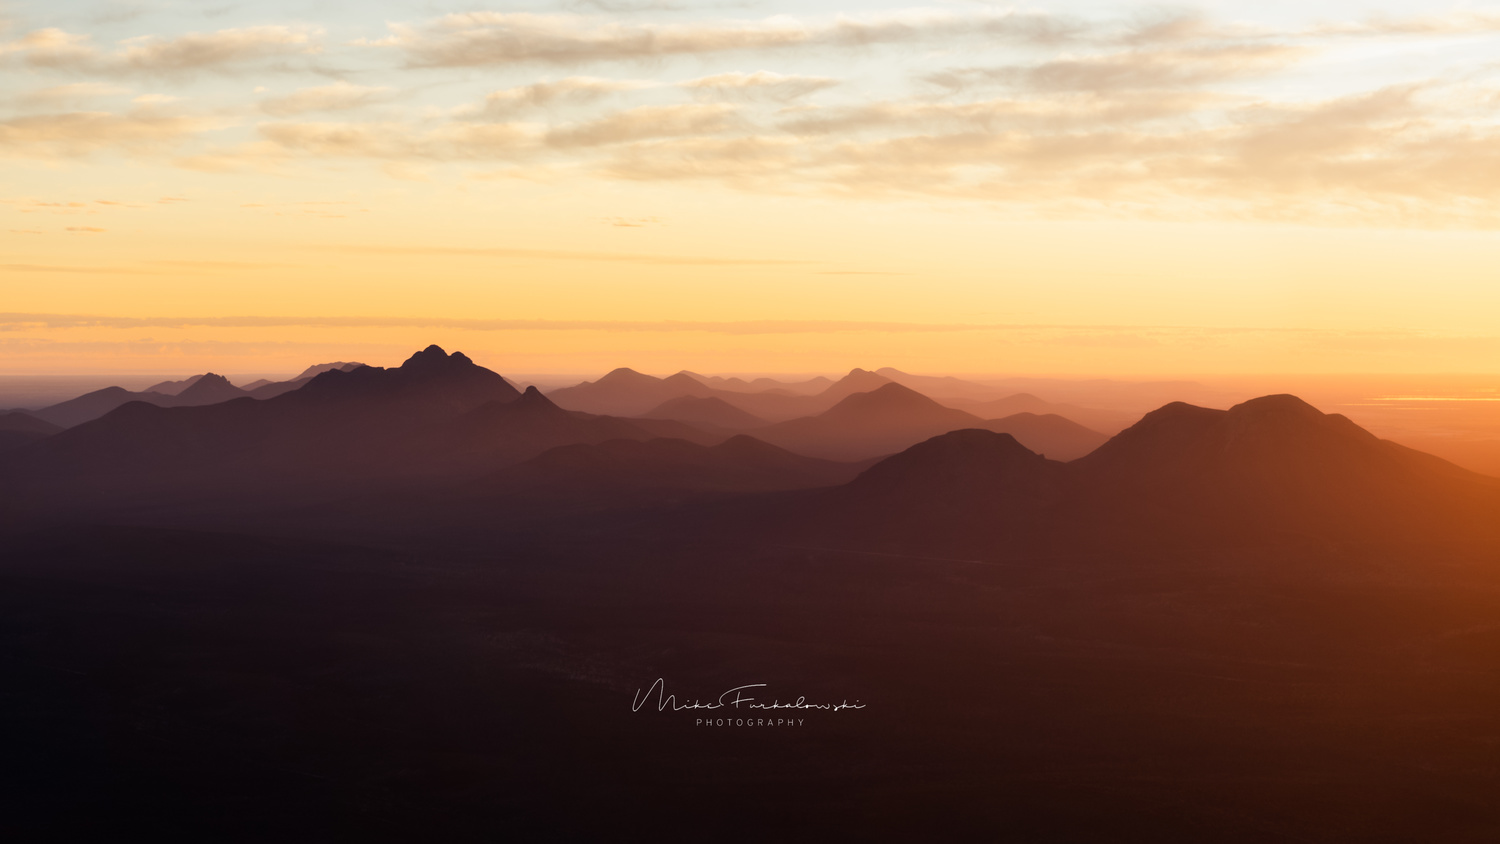 Stirling Range, Western Australia by Mike Furkalowski